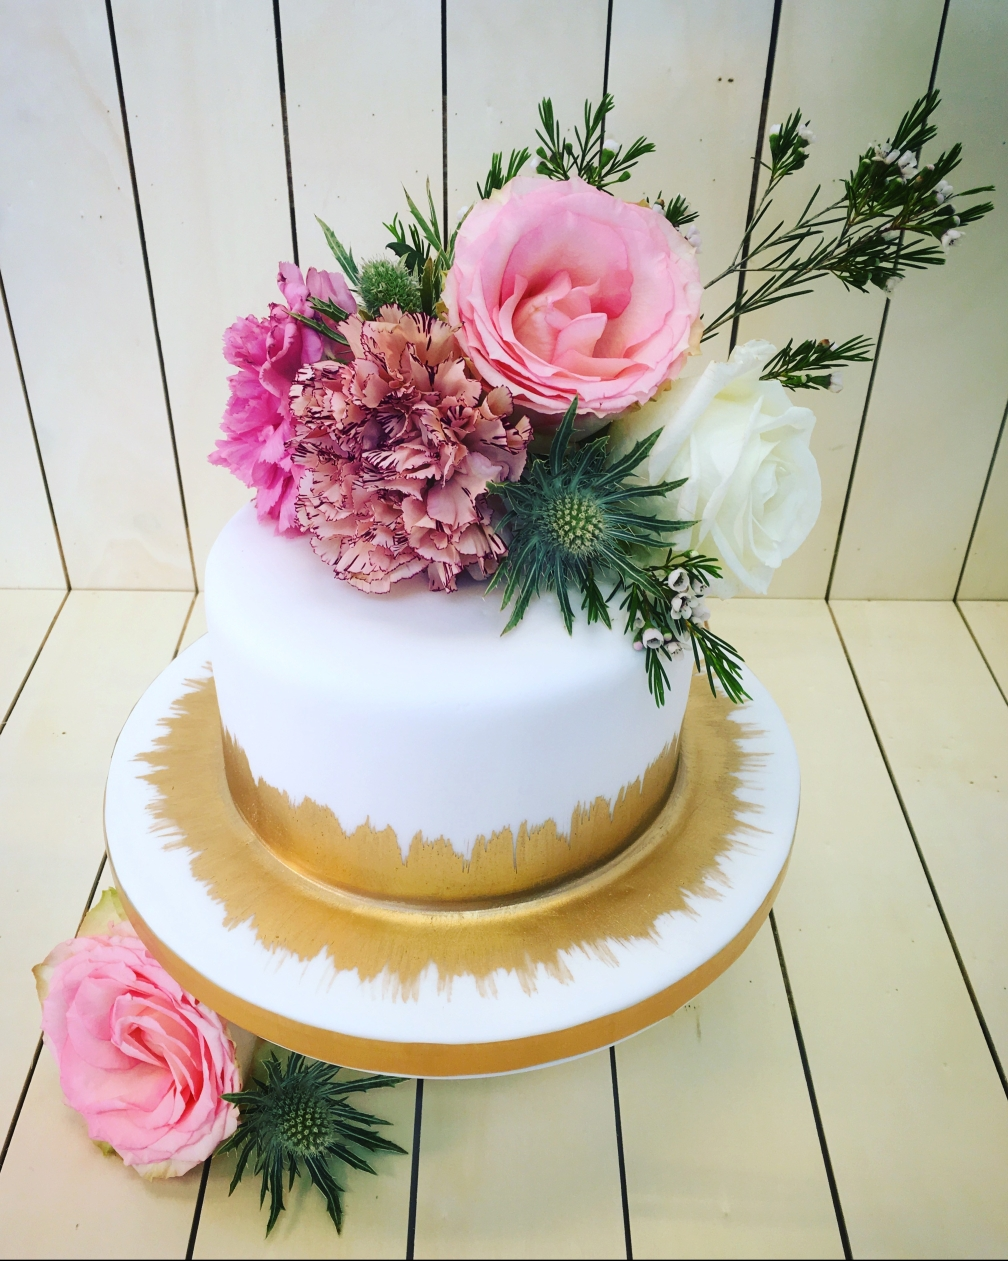 Sunshine cake with fresh flowers